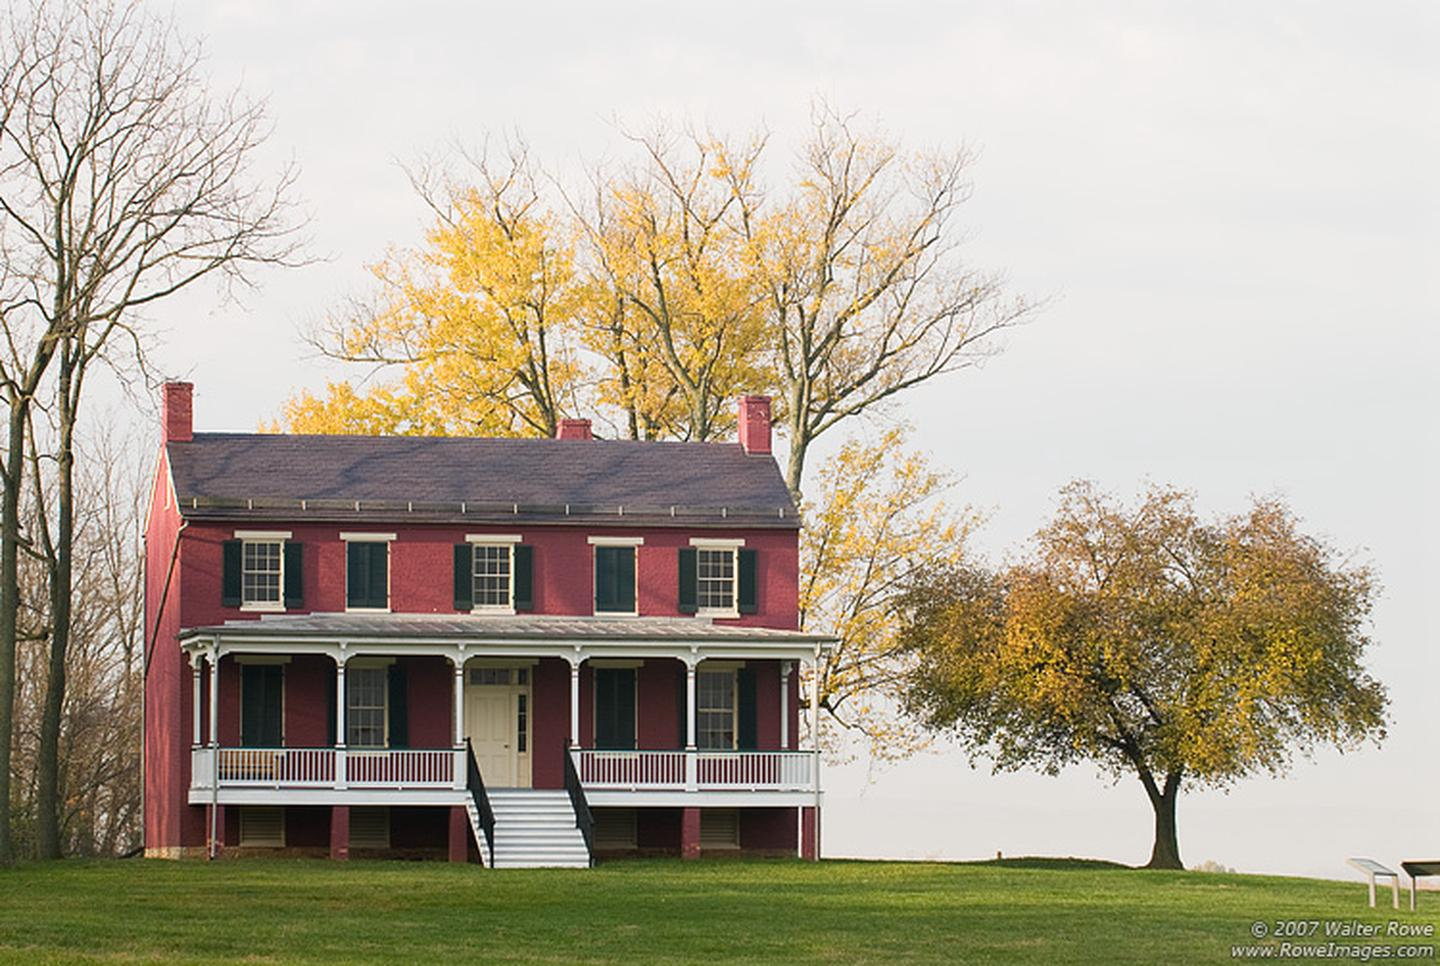 The Worthington HouseThe Worthington House is one of the most iconic locations on the battlefield.